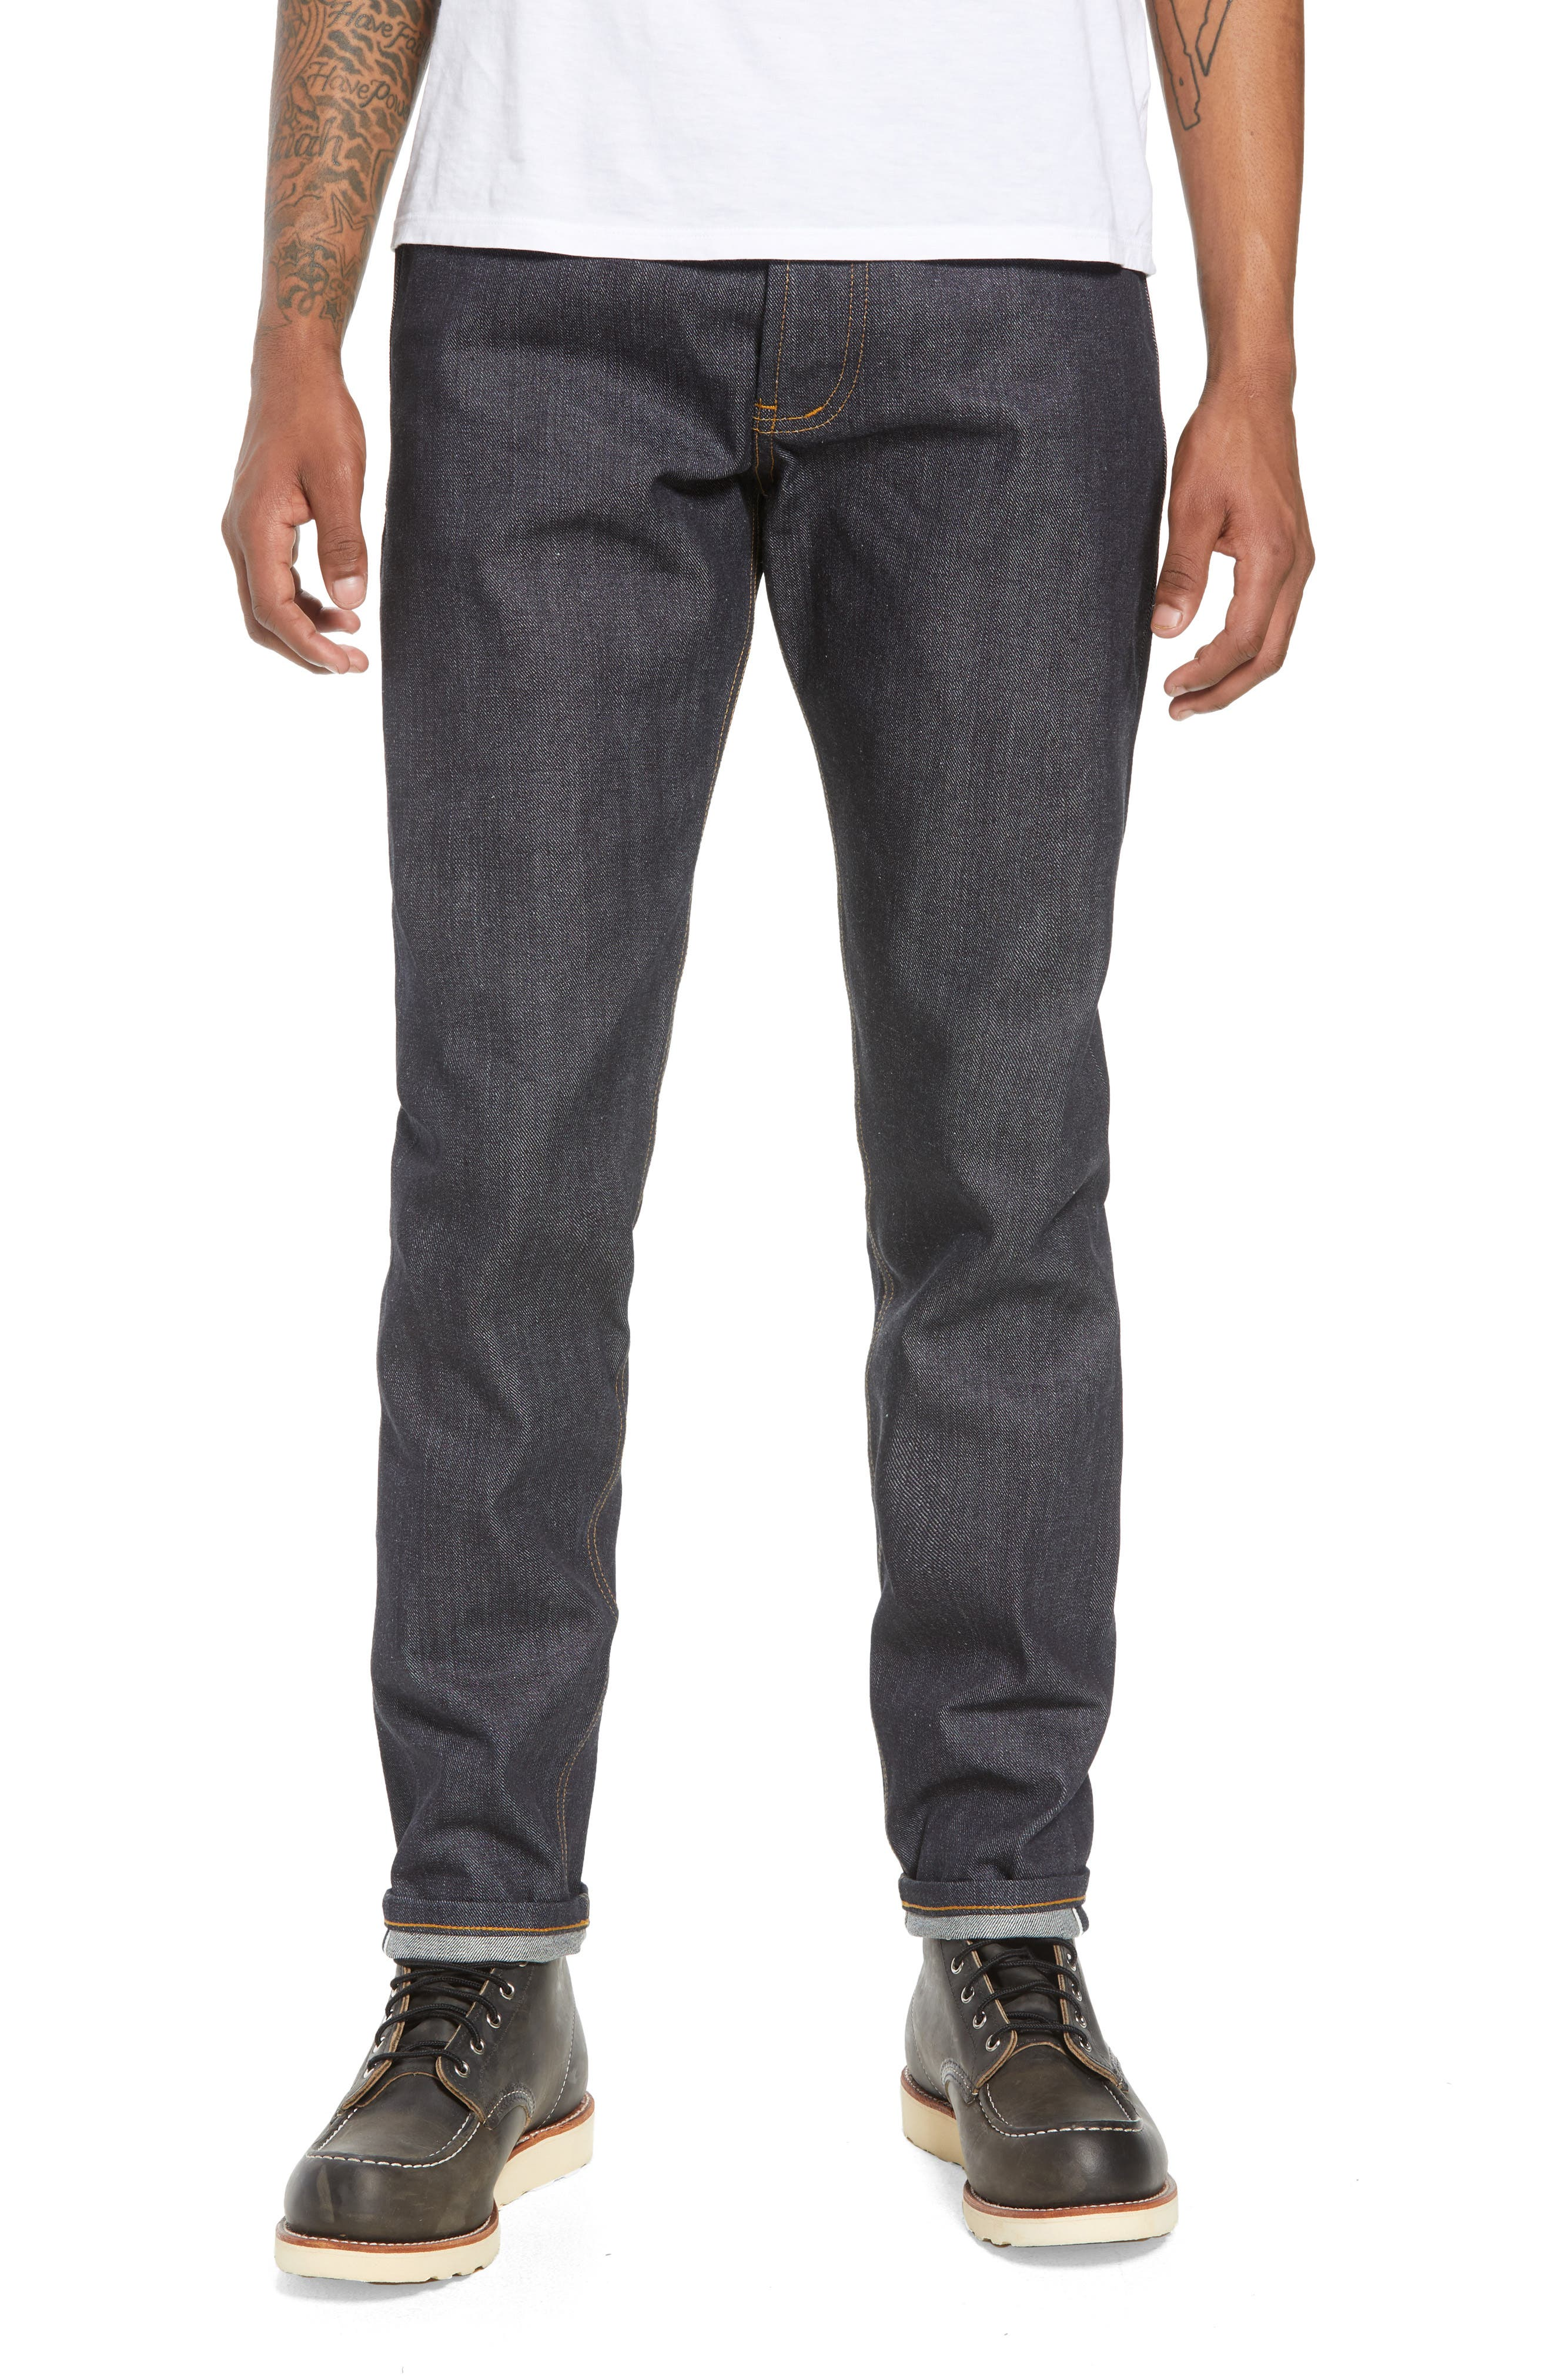 Easy Guy Skinny Fit Jeans,                             Main thumbnail 1, color,                             LEFT HAND TWILL SELVEDGE